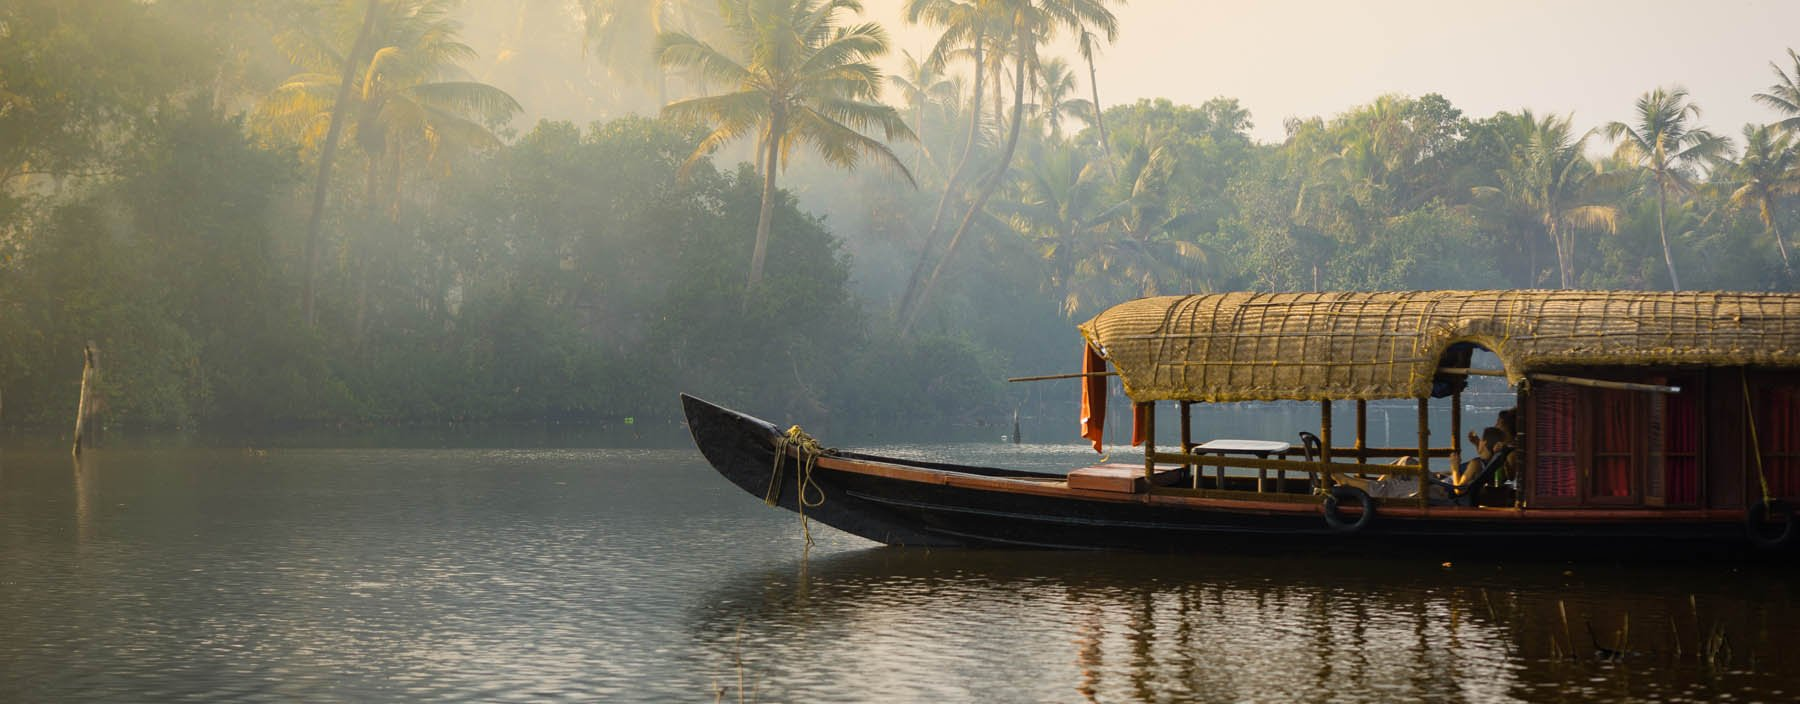 in, kerala, boot op backwaters.jpg